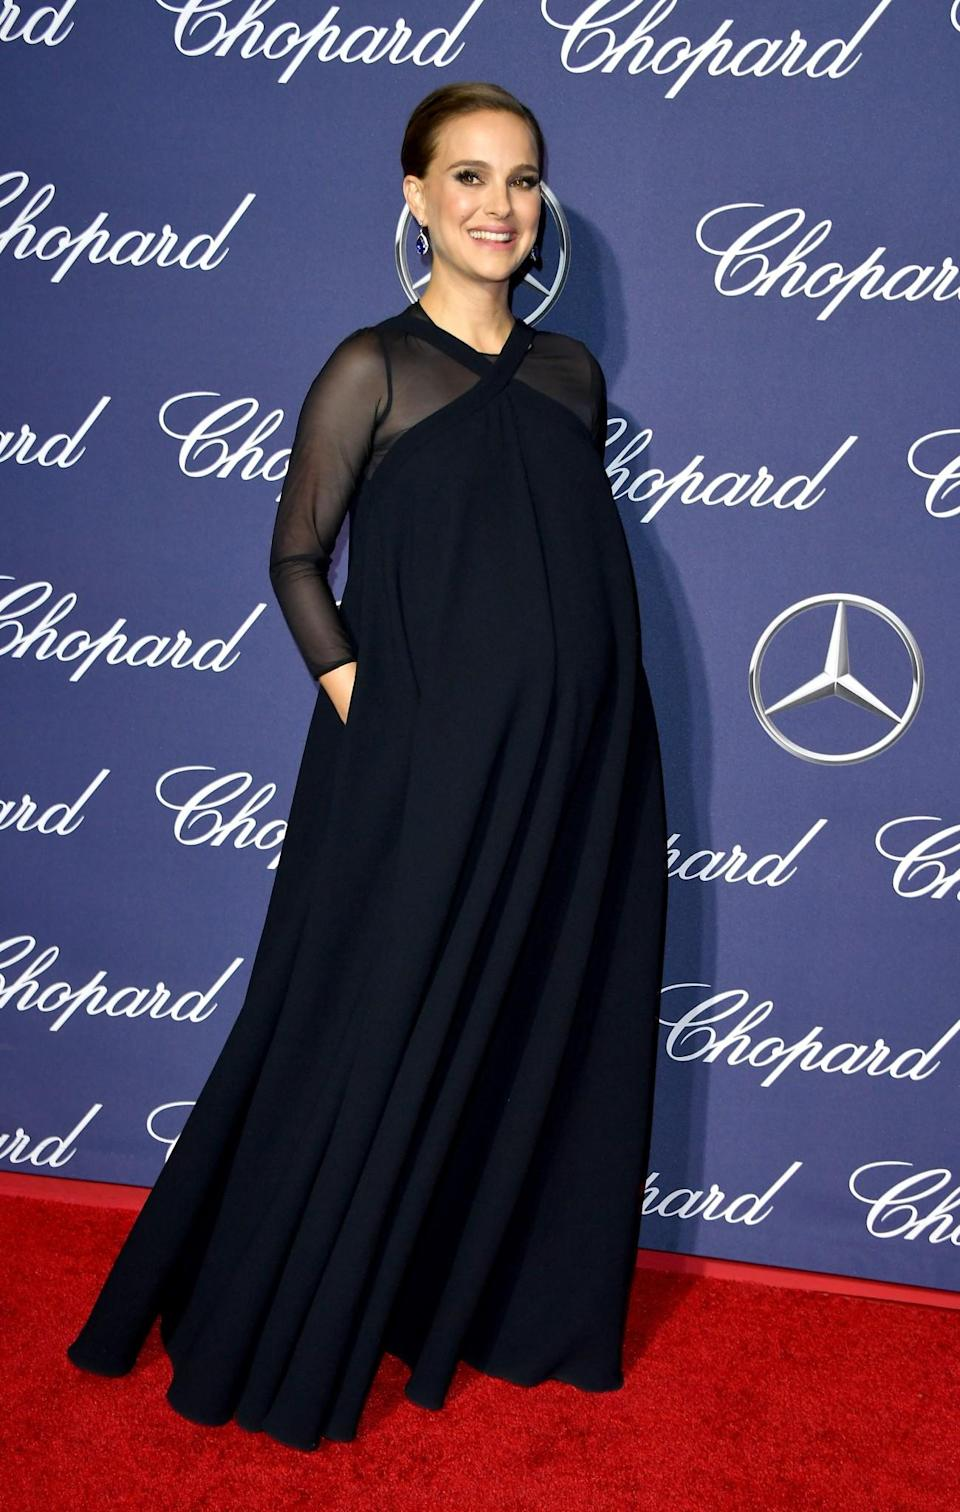 <p>Wearing a dress from the Dior SS17 collection (reworked to include sheer sleeves and accommodate the star's blossoming baby bump), the actress looked both chic and comfortable in this midnight blue designer piece. [Photo: Getty] </p>